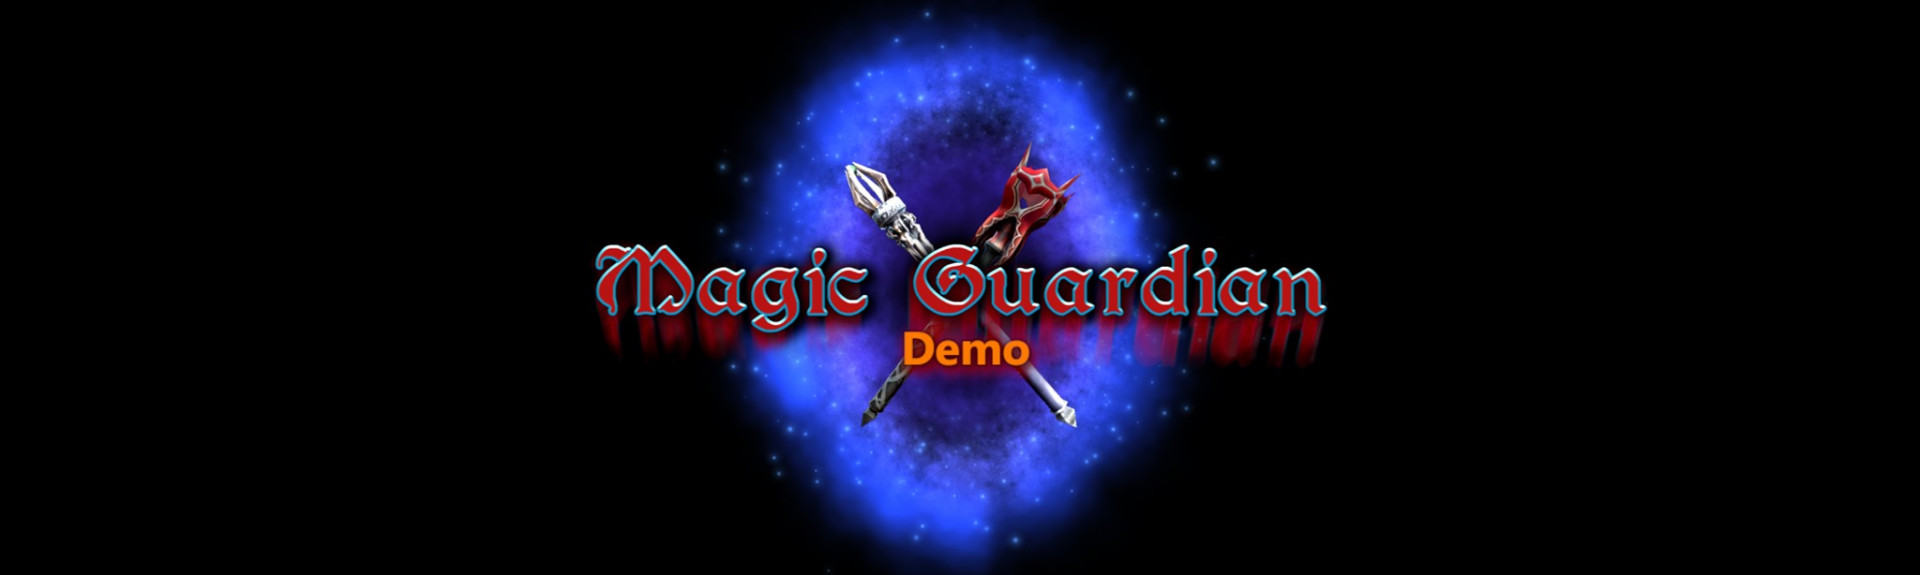 Magic Guardian Demo